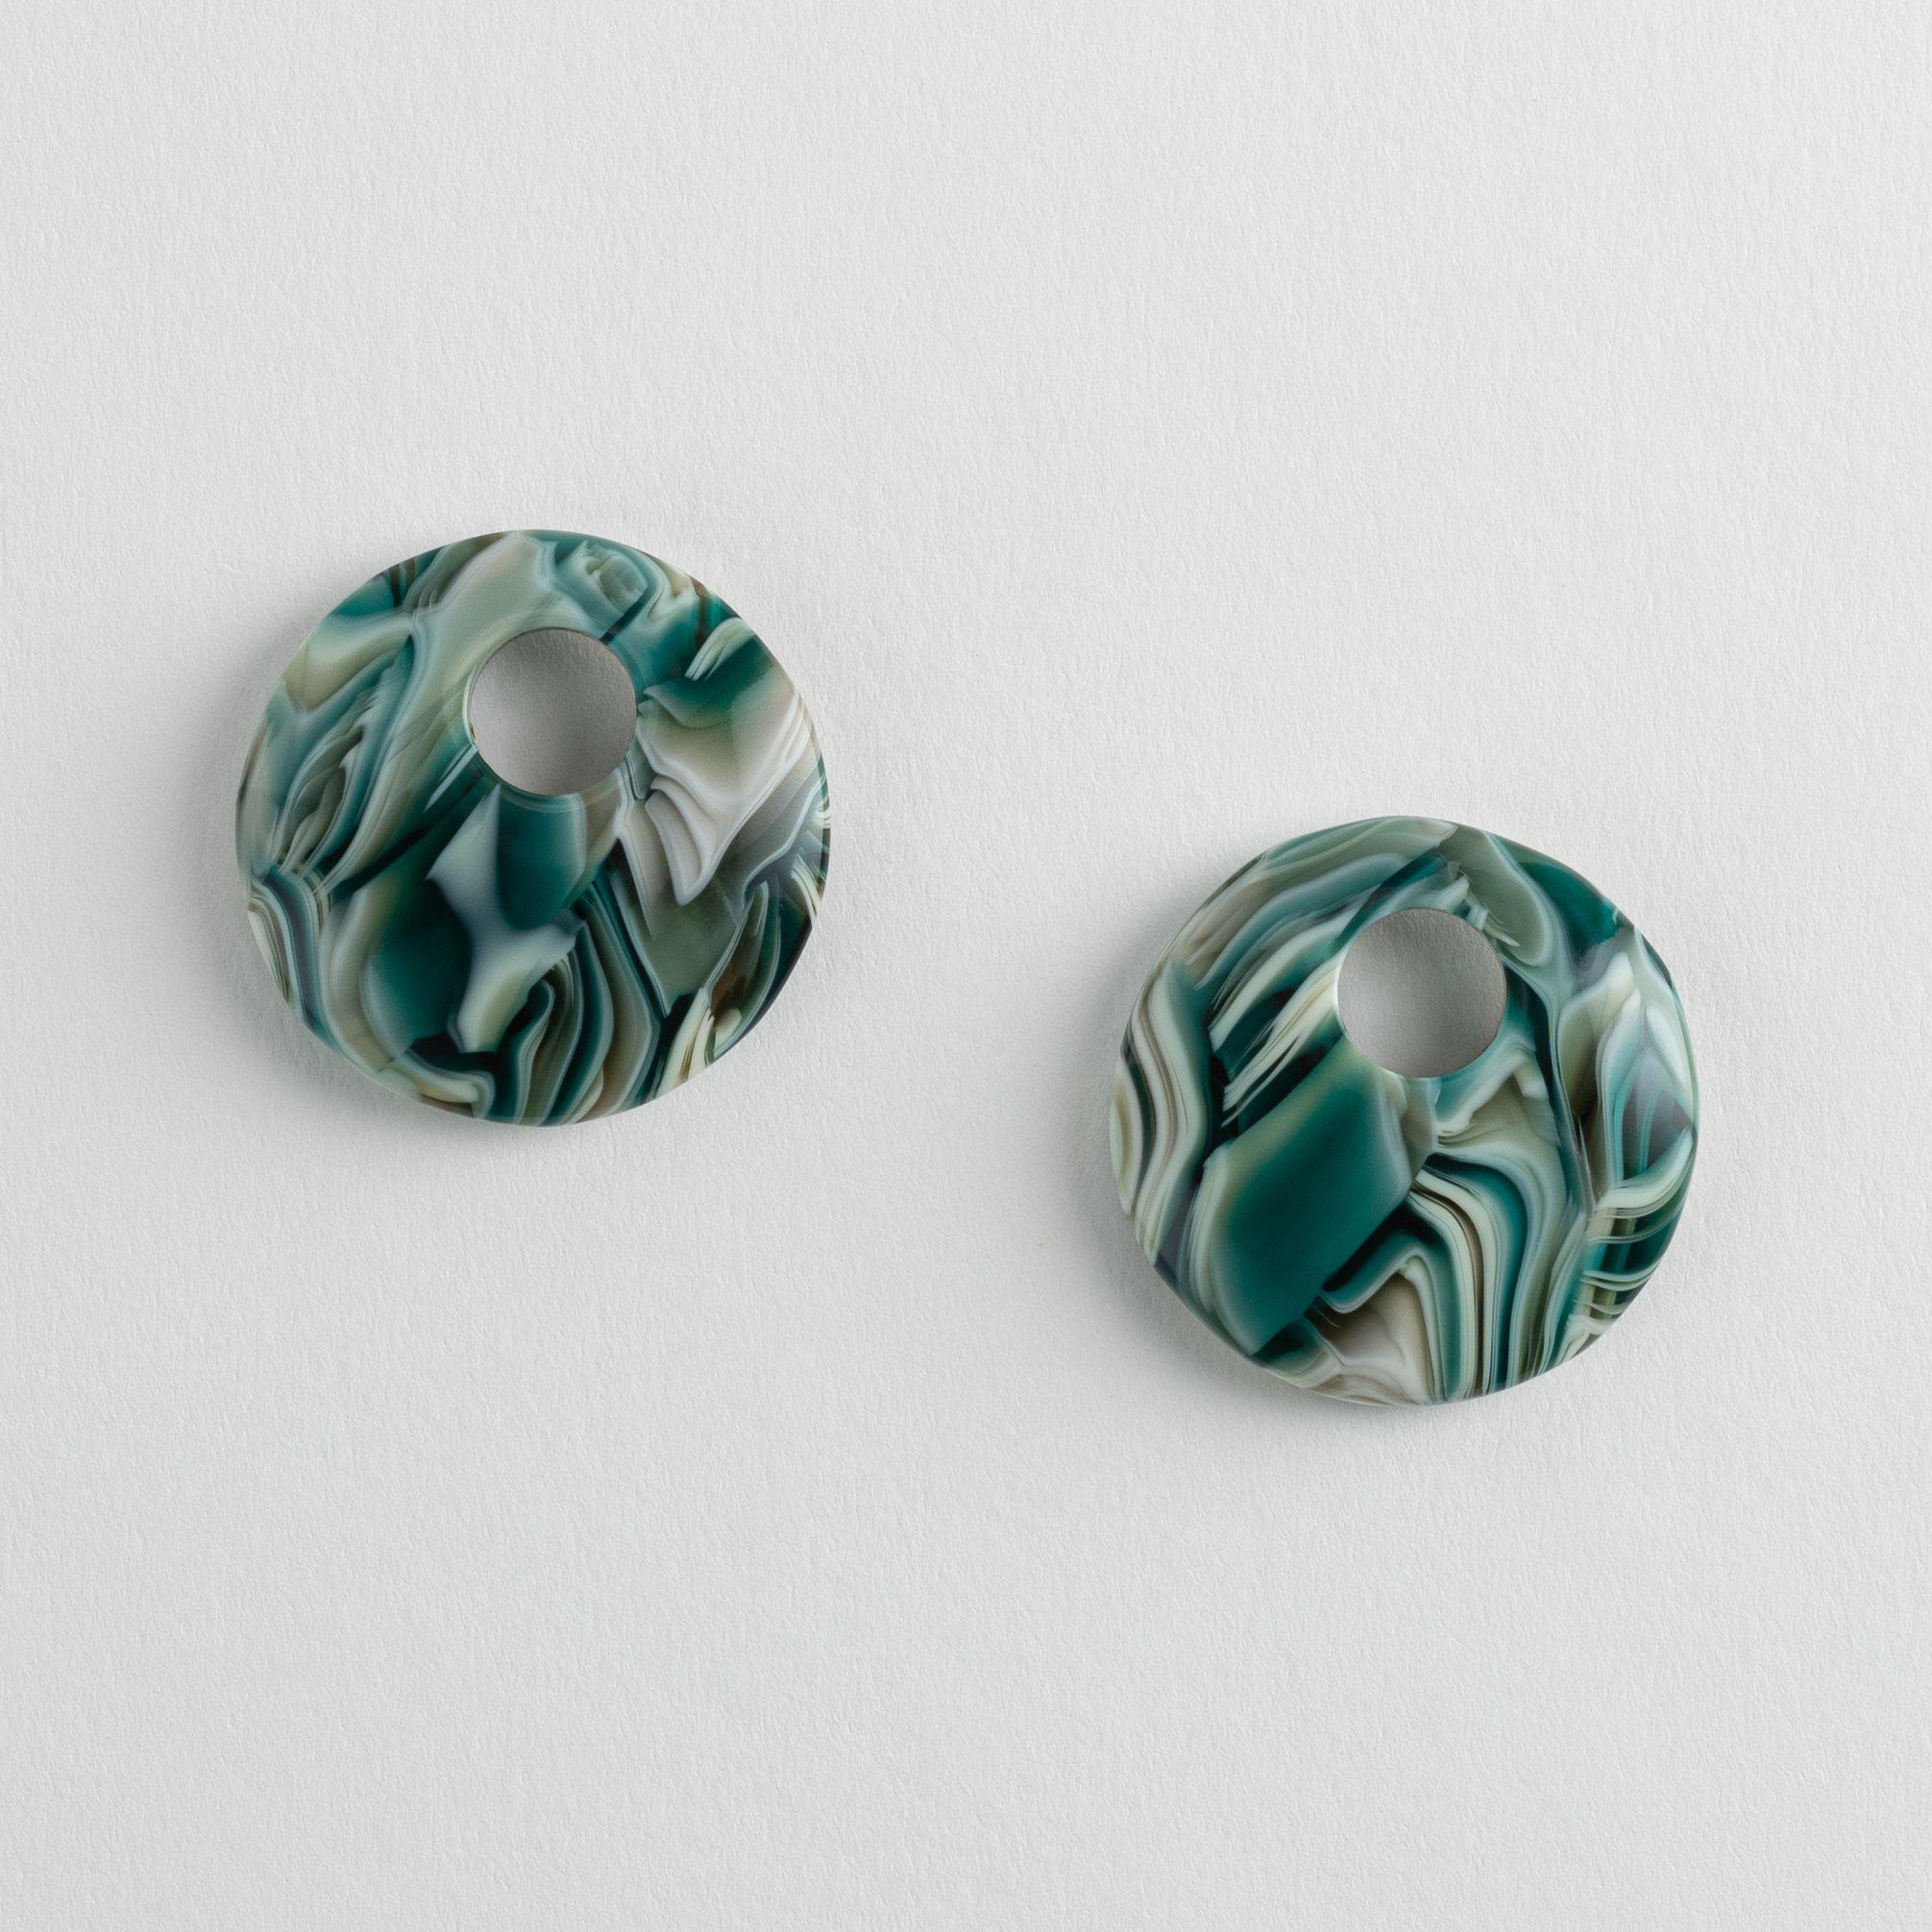 Disc Charms in Stromanthe